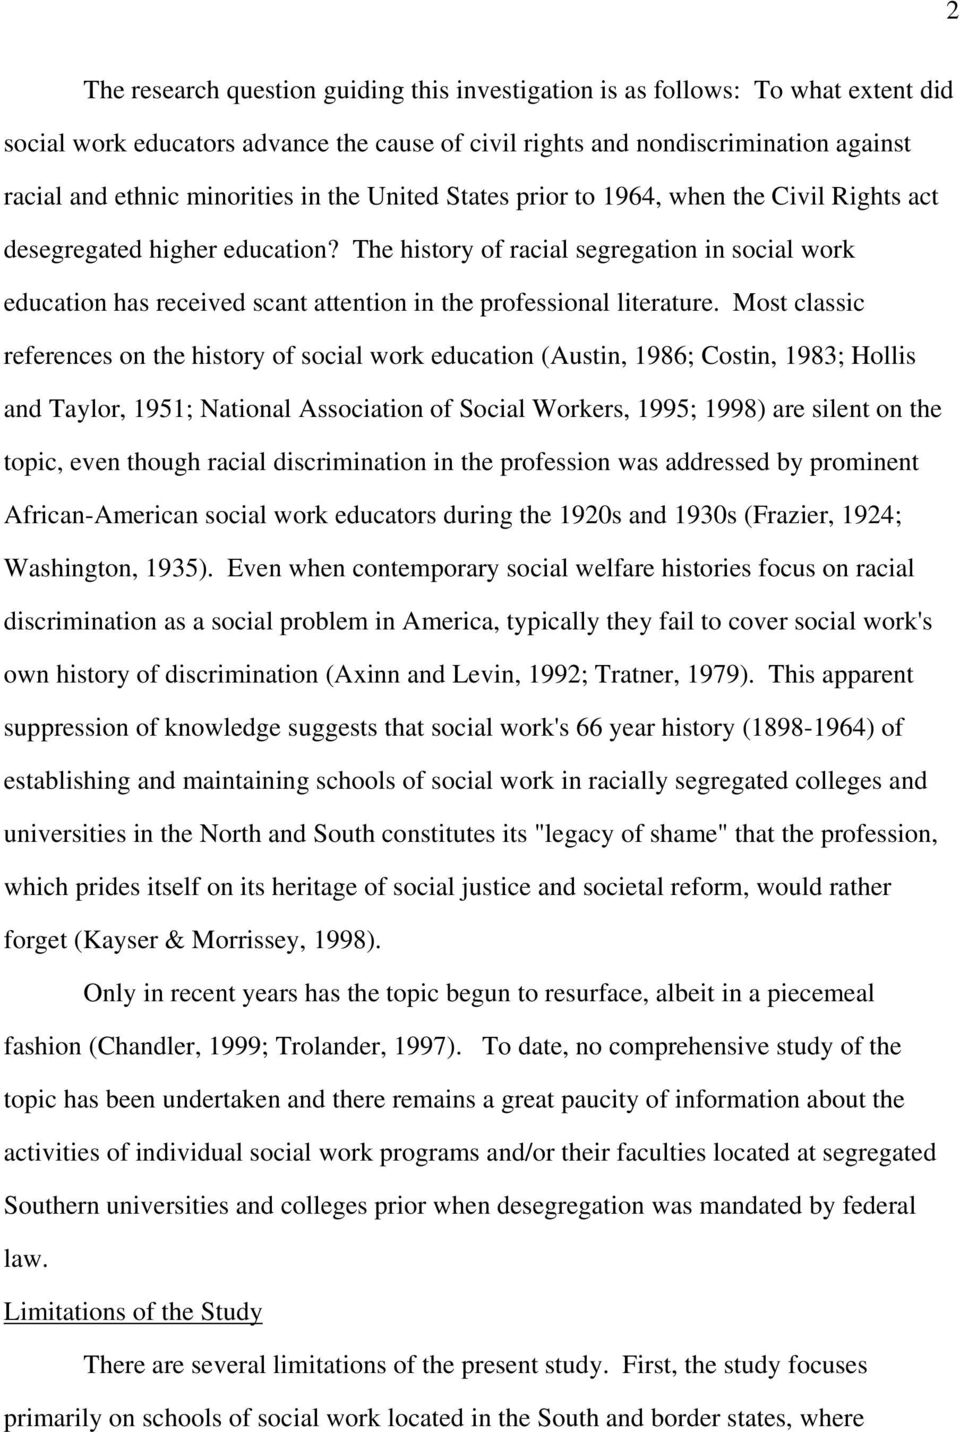 The history of racial segregation in social work education has received scant attention in the professional literature.